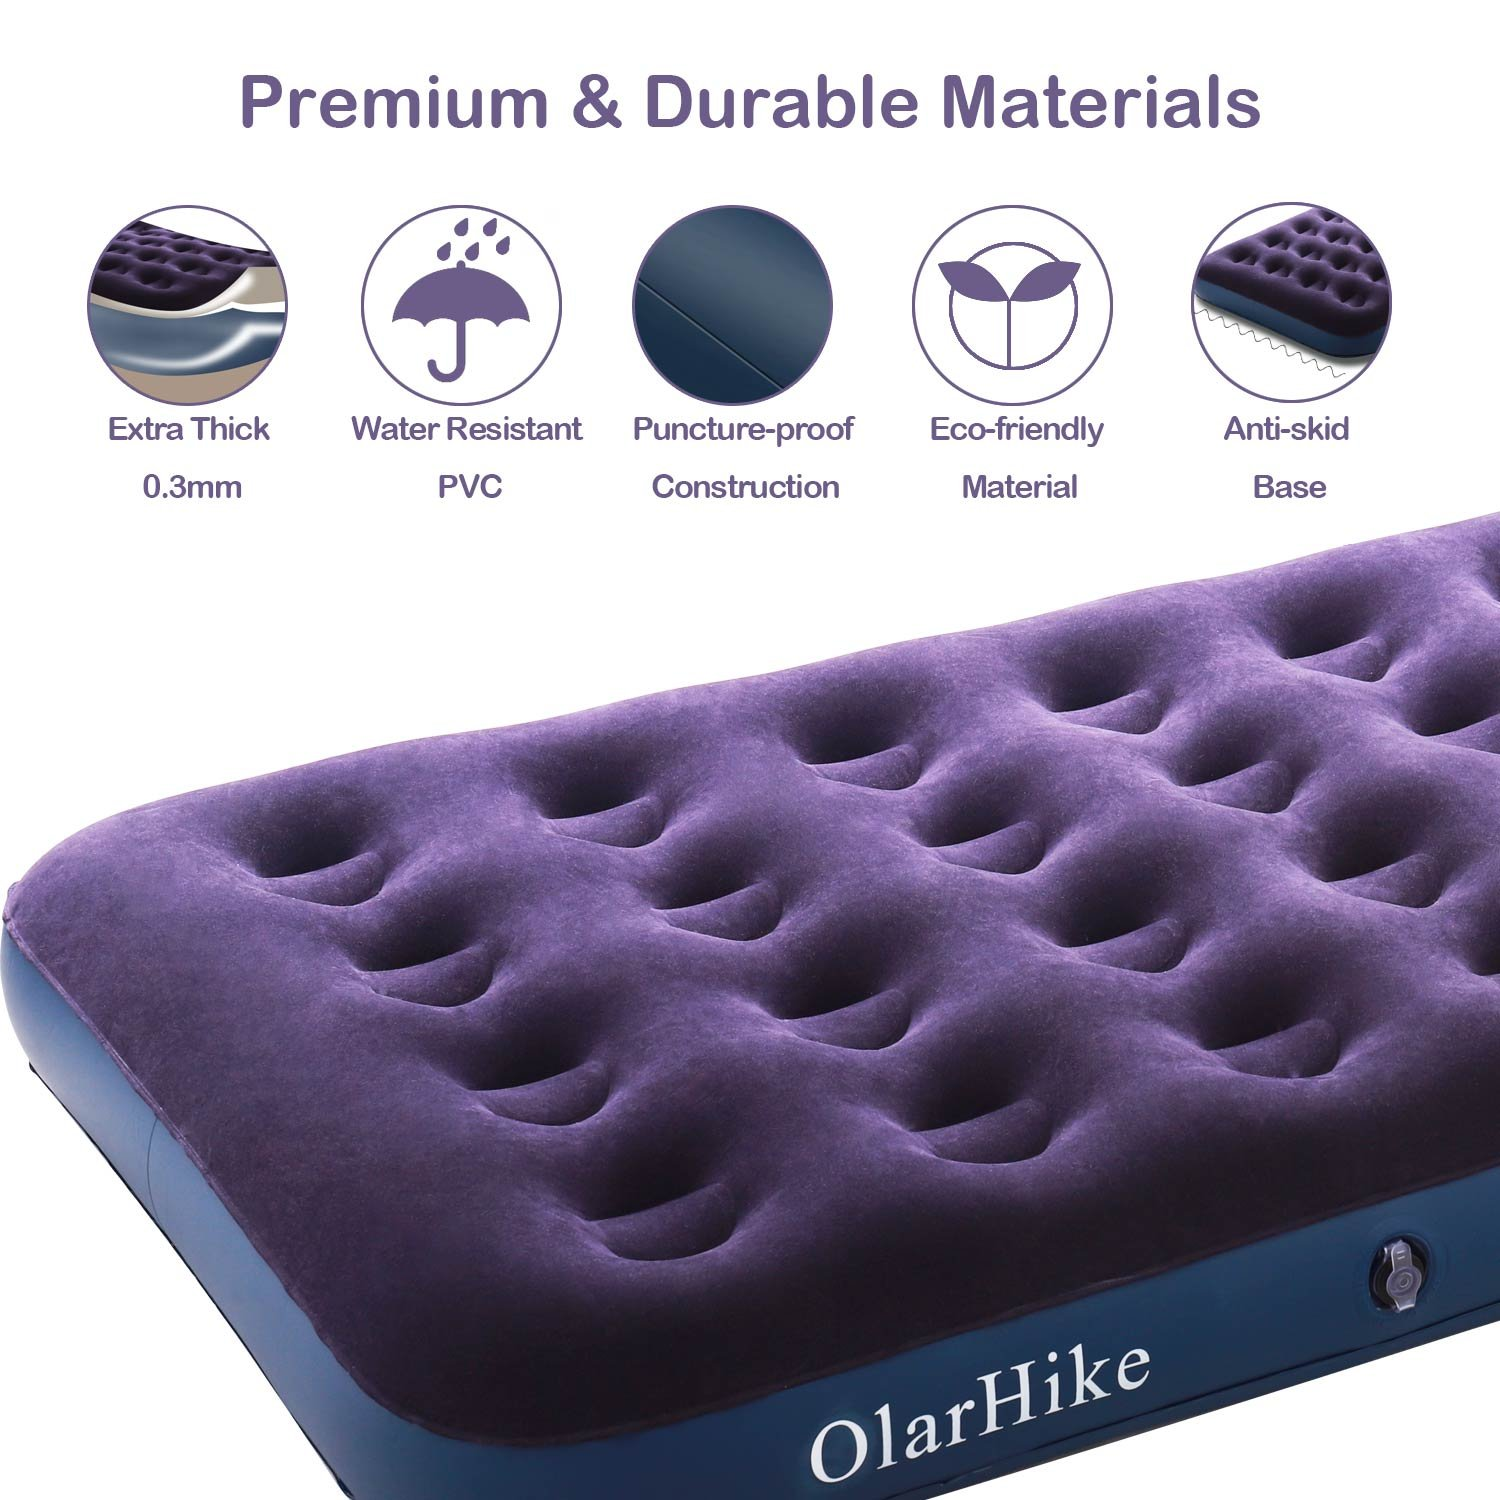 OlarHike Twin Air Mattress with Electric Pump, Portable Air Bed Blow Up Mattress for Camping Car, Repair Patches | Pillow Included by OlarHike (Image #7)